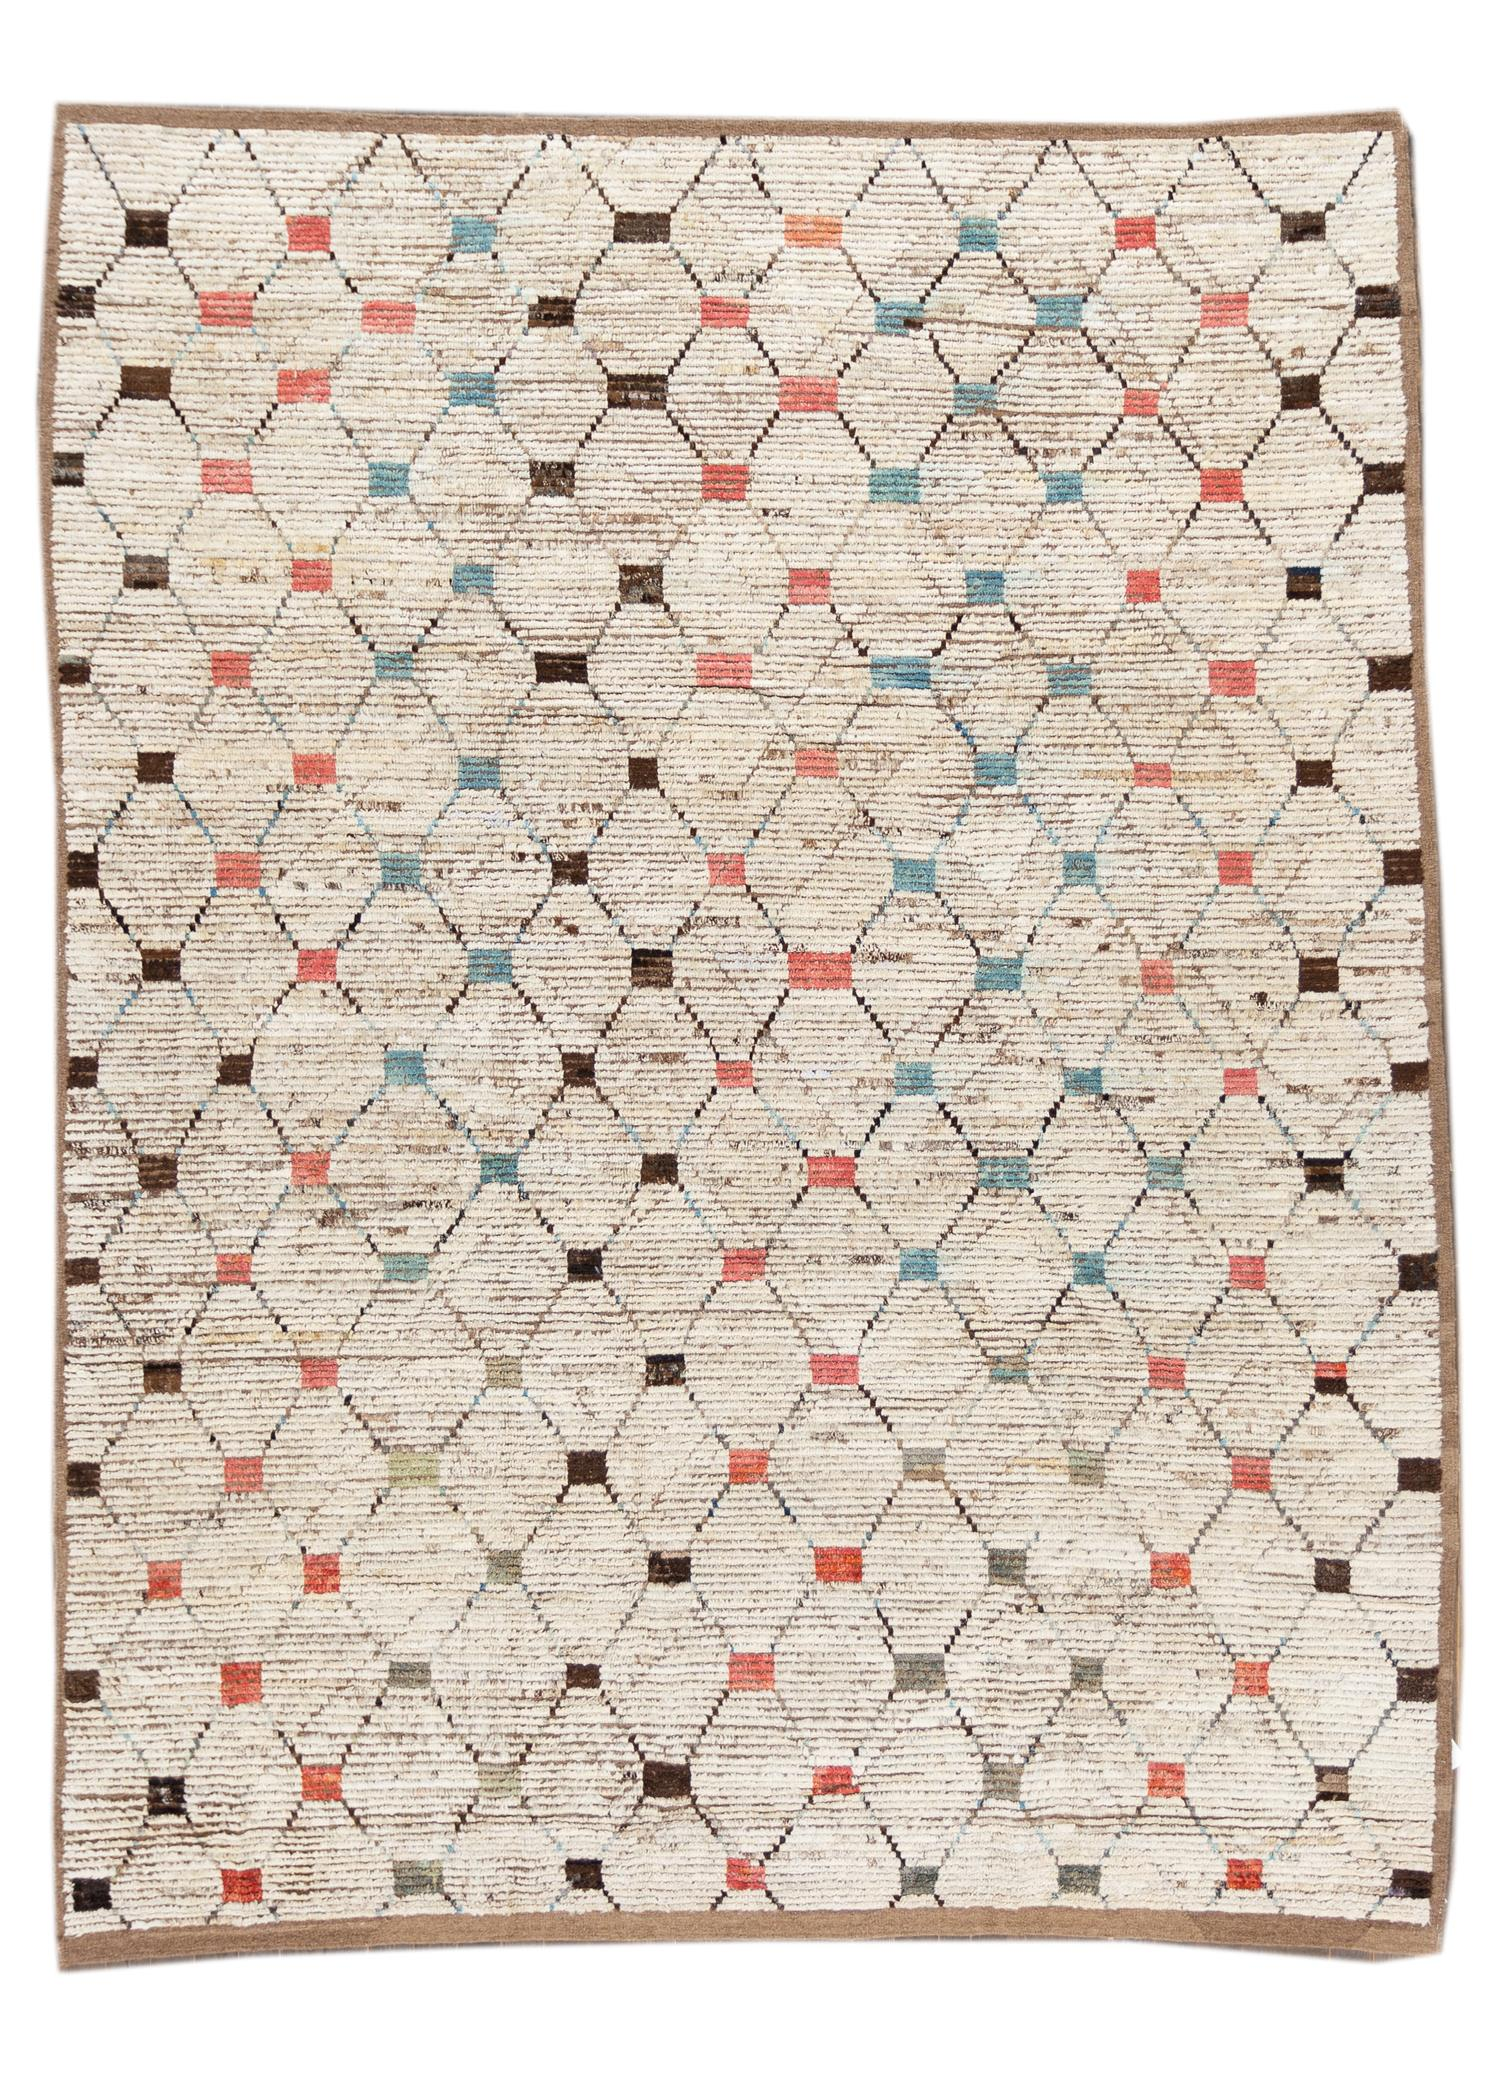 21st Century Modern Moroccan-style Rug, 9' x 11'